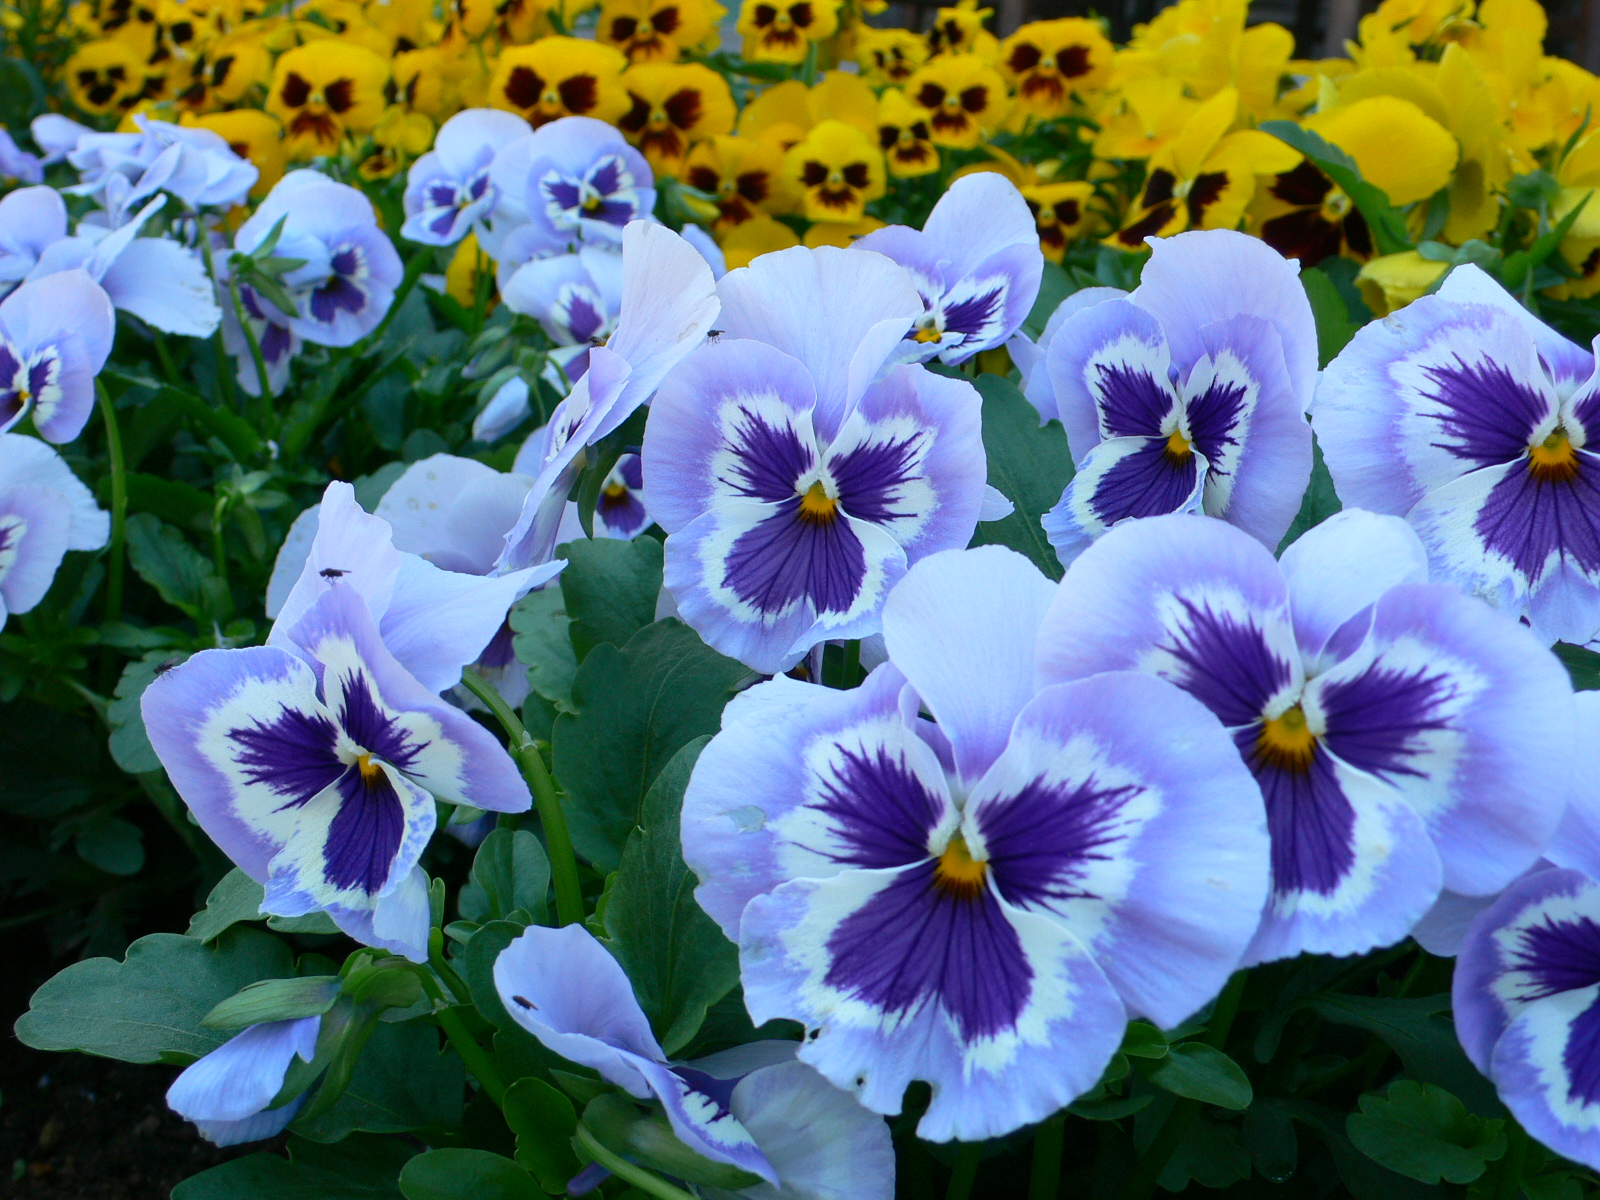 Violet (Pansy) Edible Flowers to Flavour your Food & Improve your Health (gardeningflavours.com)